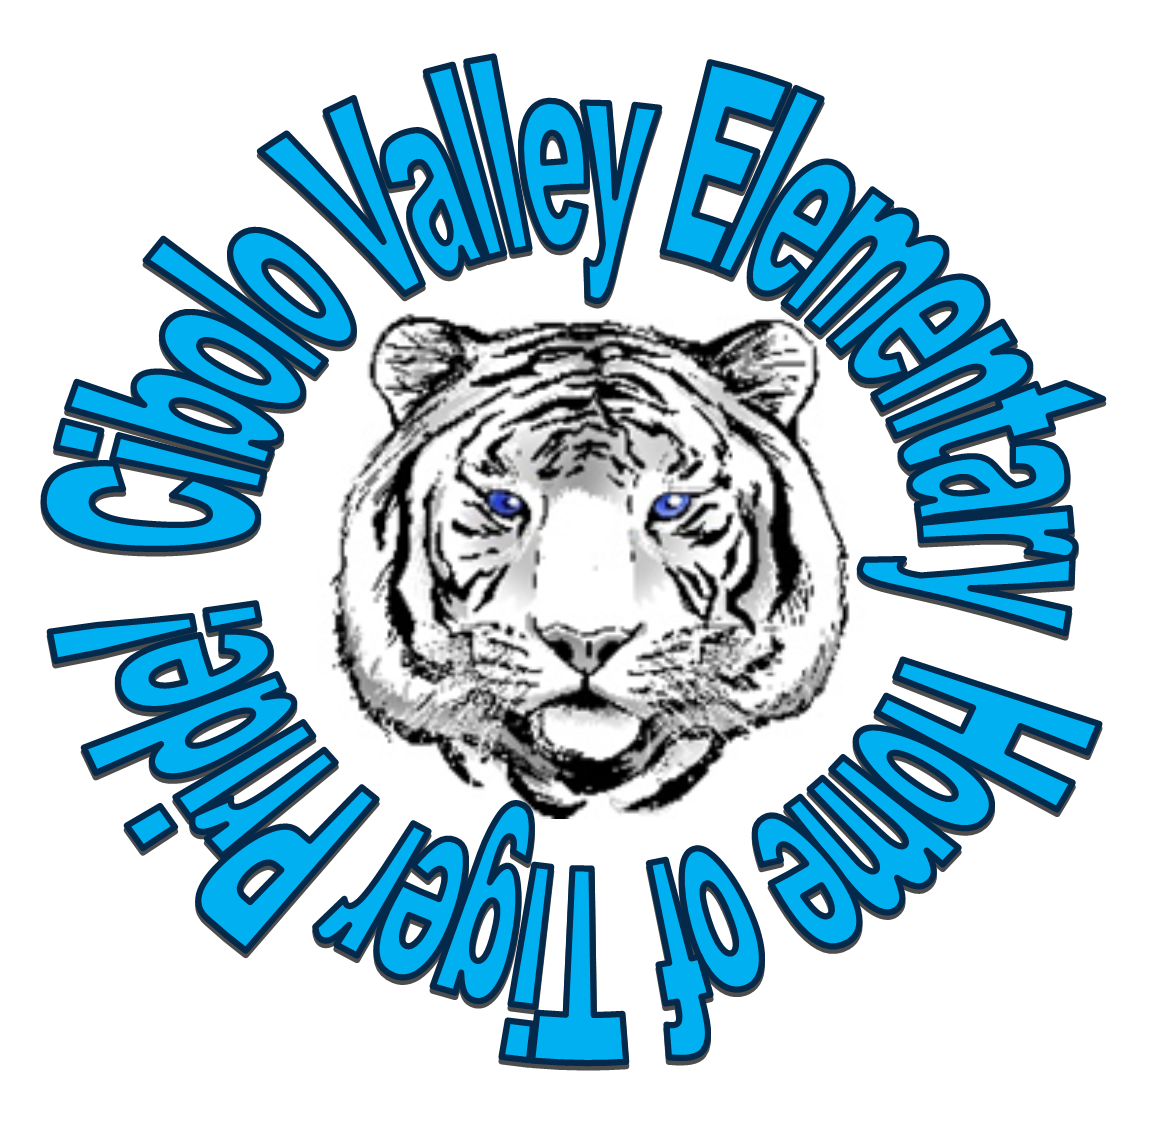 Cibolo Valley Elementary School / Homepage